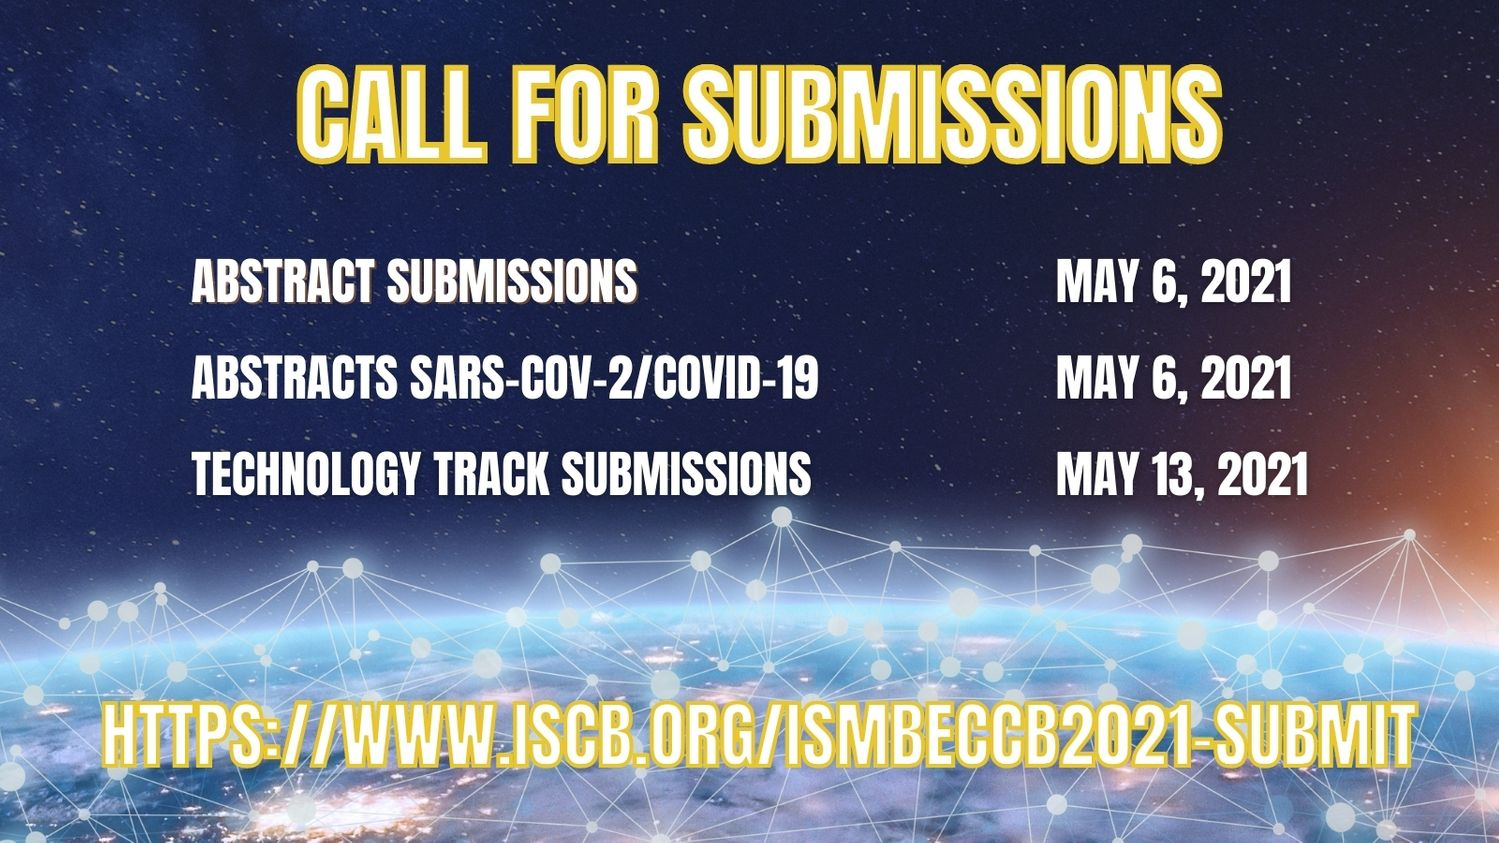 ISMB/ECCB 2021: Call for Submissions!